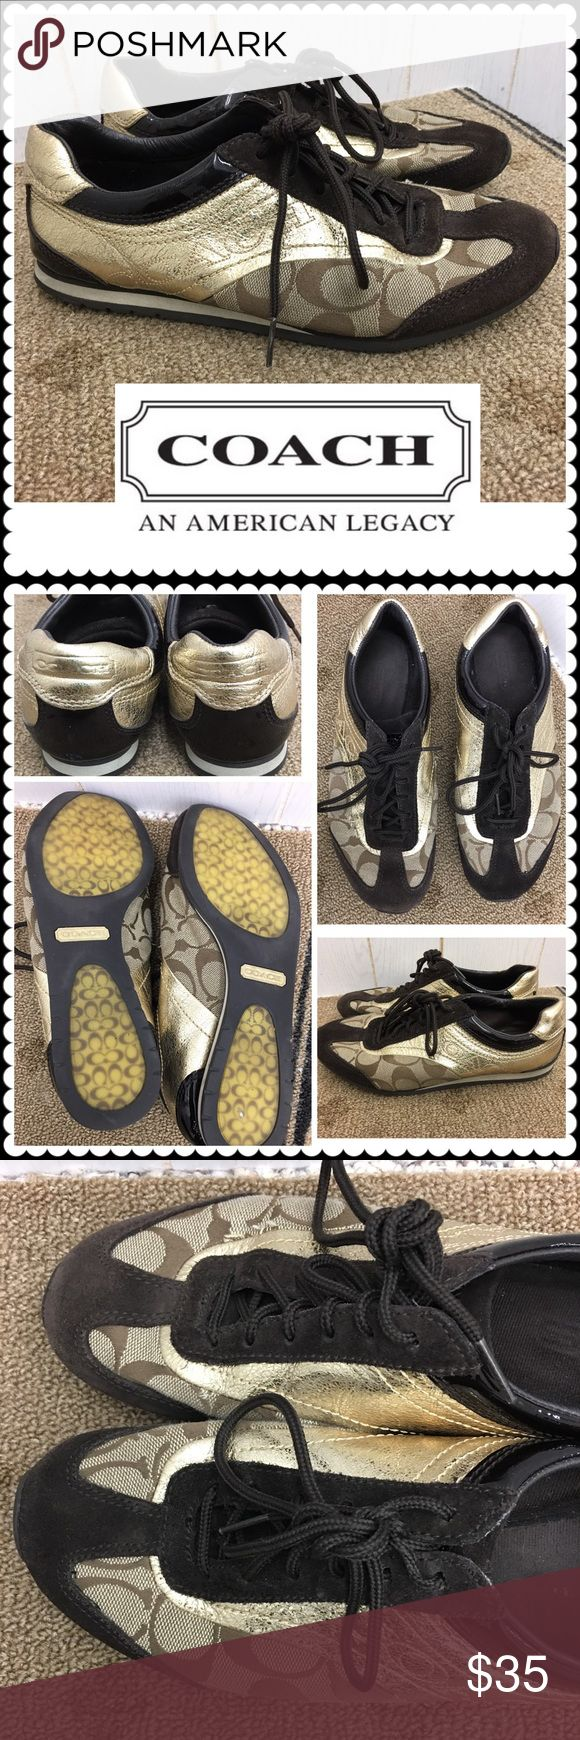 Brown/Gold COACH Tennis Shoes Sz 6 Brown signature COACH tennis shoes with Gold Trim. Lace up. Sz 6 Gently worn, in great shape! Coach Shoes Sneakers